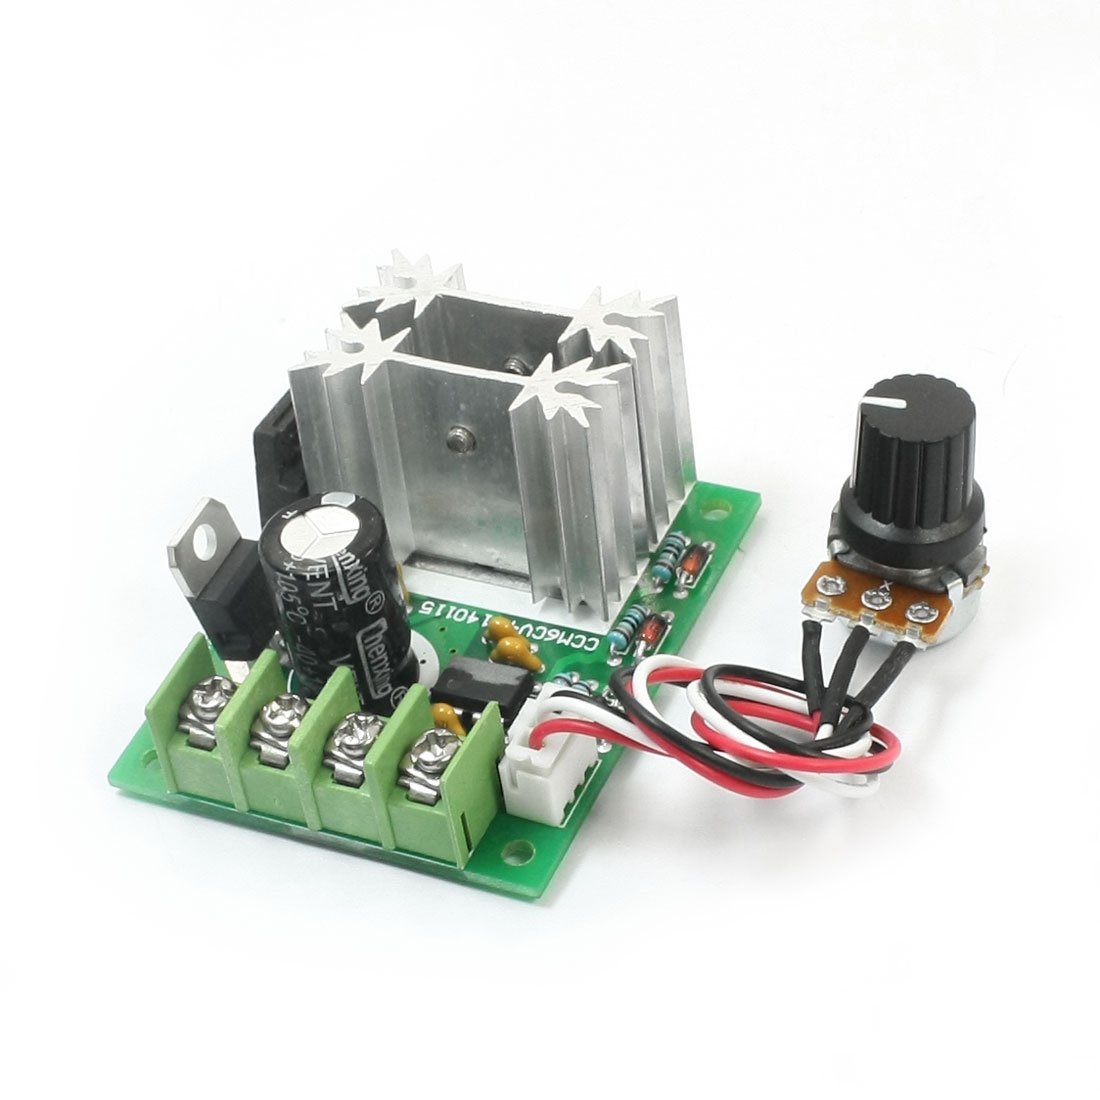 Universal PWM DC Motor Stepless Speed Controller DC6-30V 10A 21Khz